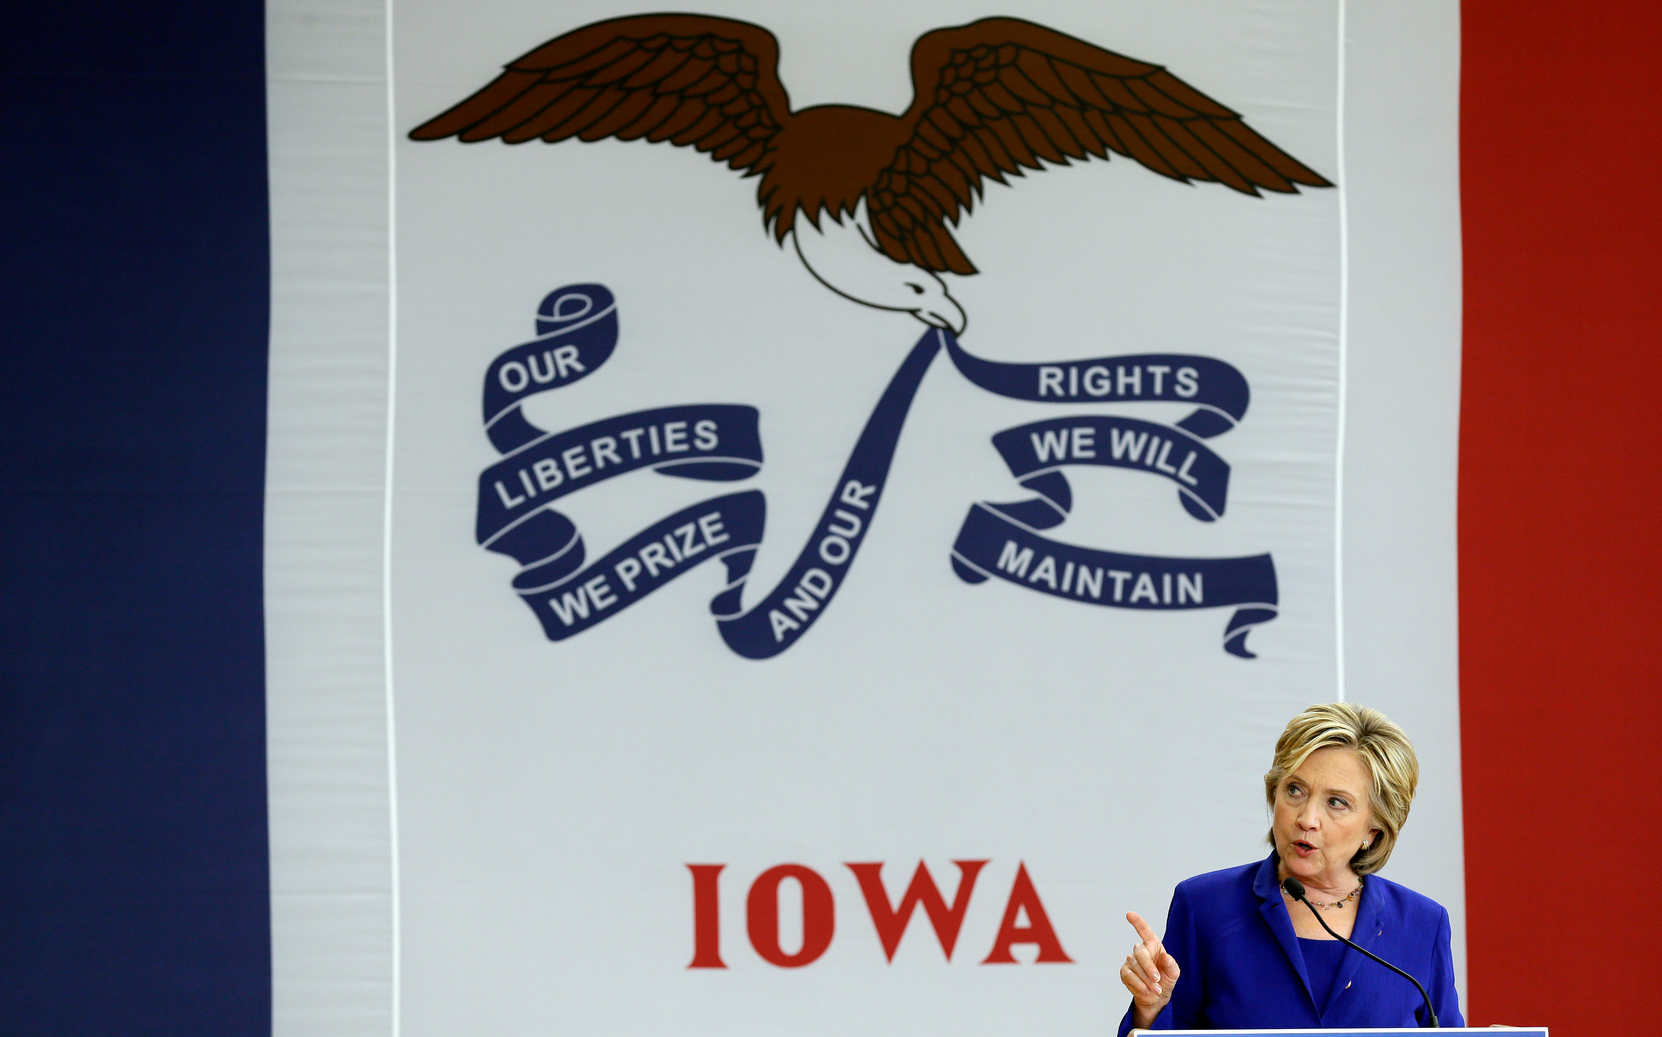 Democratic presidential candidate Hillary Clinton speaks in Iowa, a state where two supporters shared rumors about President Obama's religion in 2007. (AP)